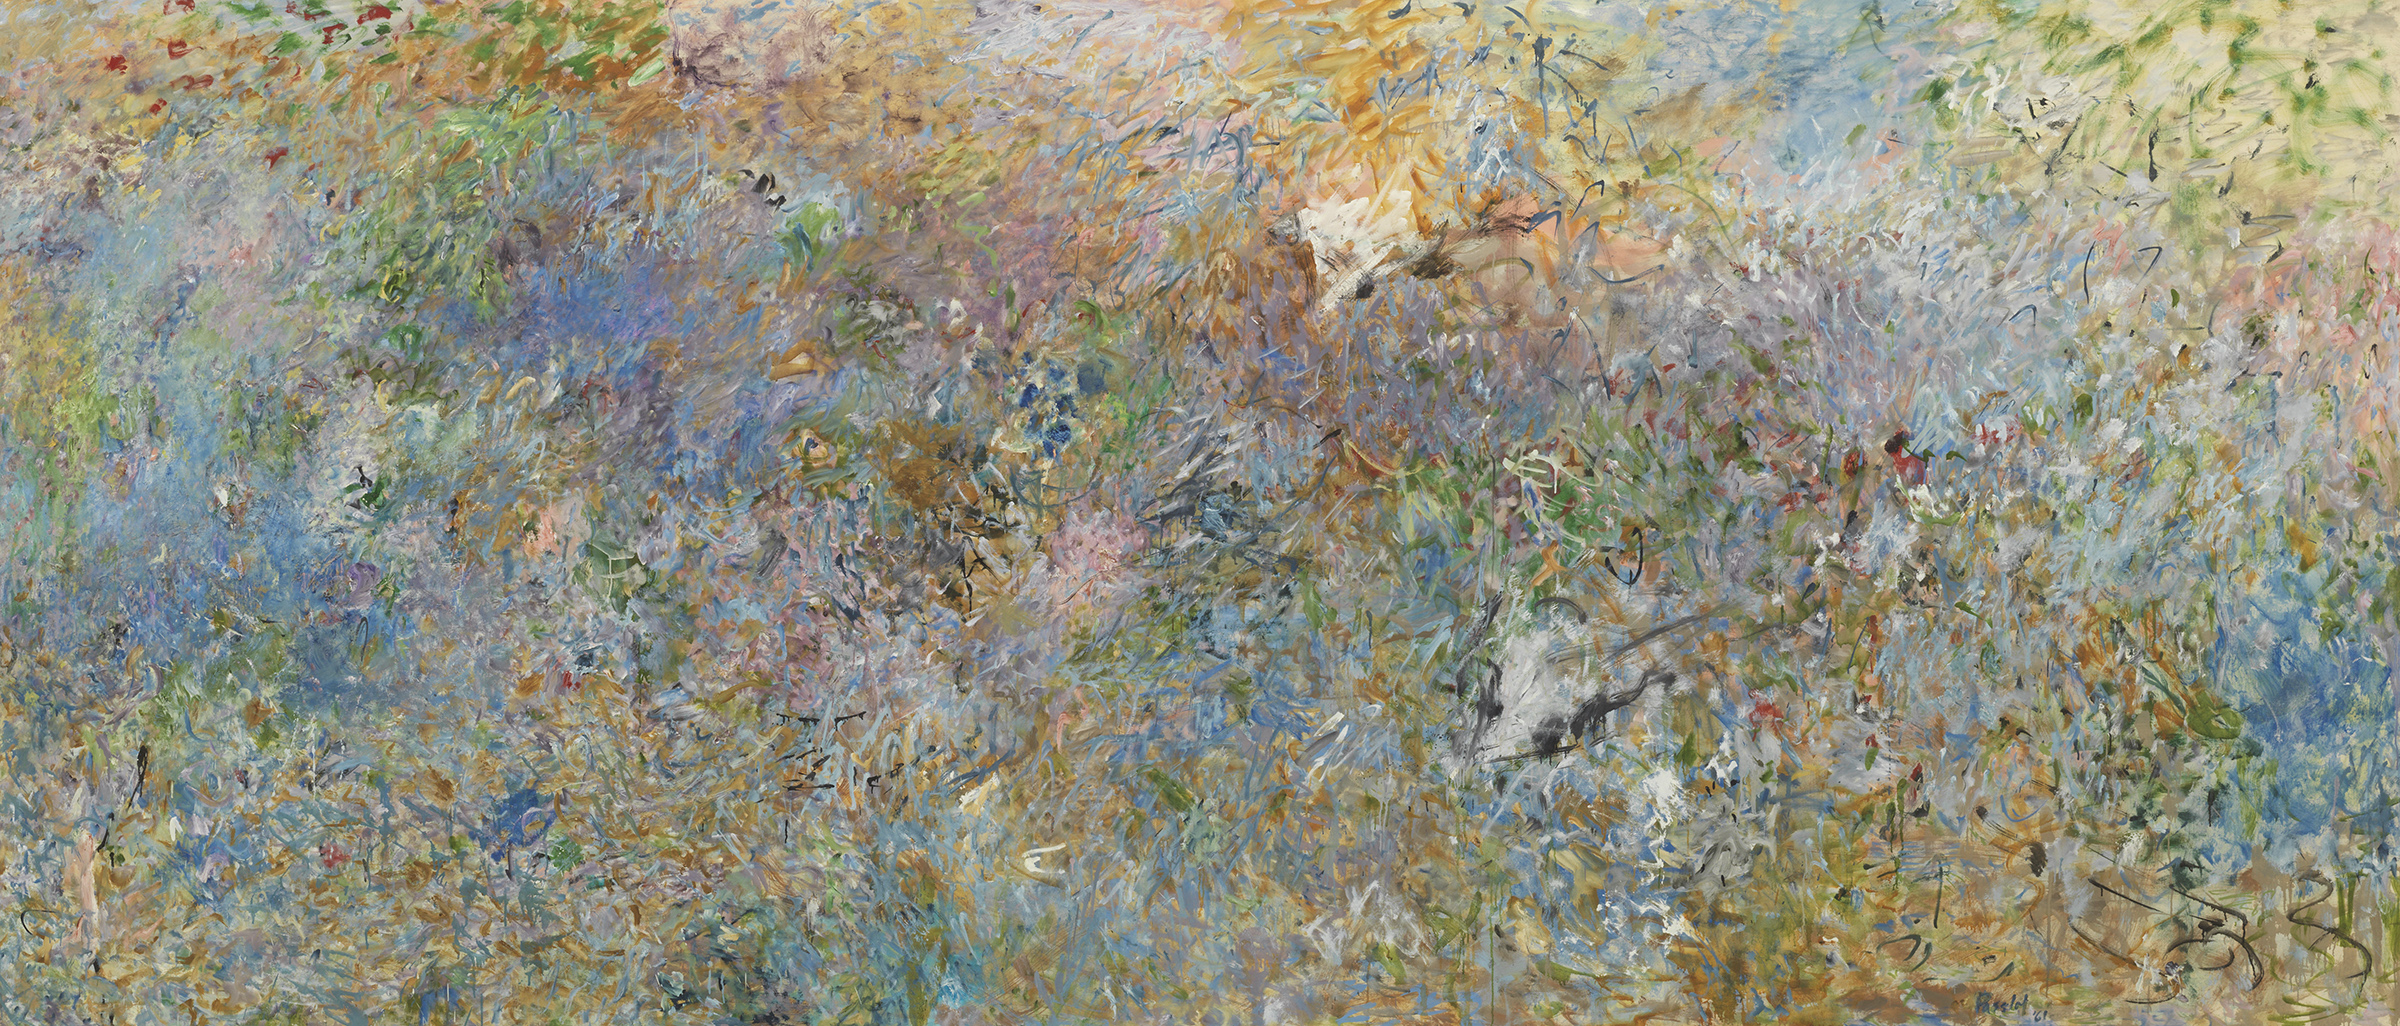 Pat Passlof  Sky Pasture , 1961 Oil on linen 68 x 144 inches